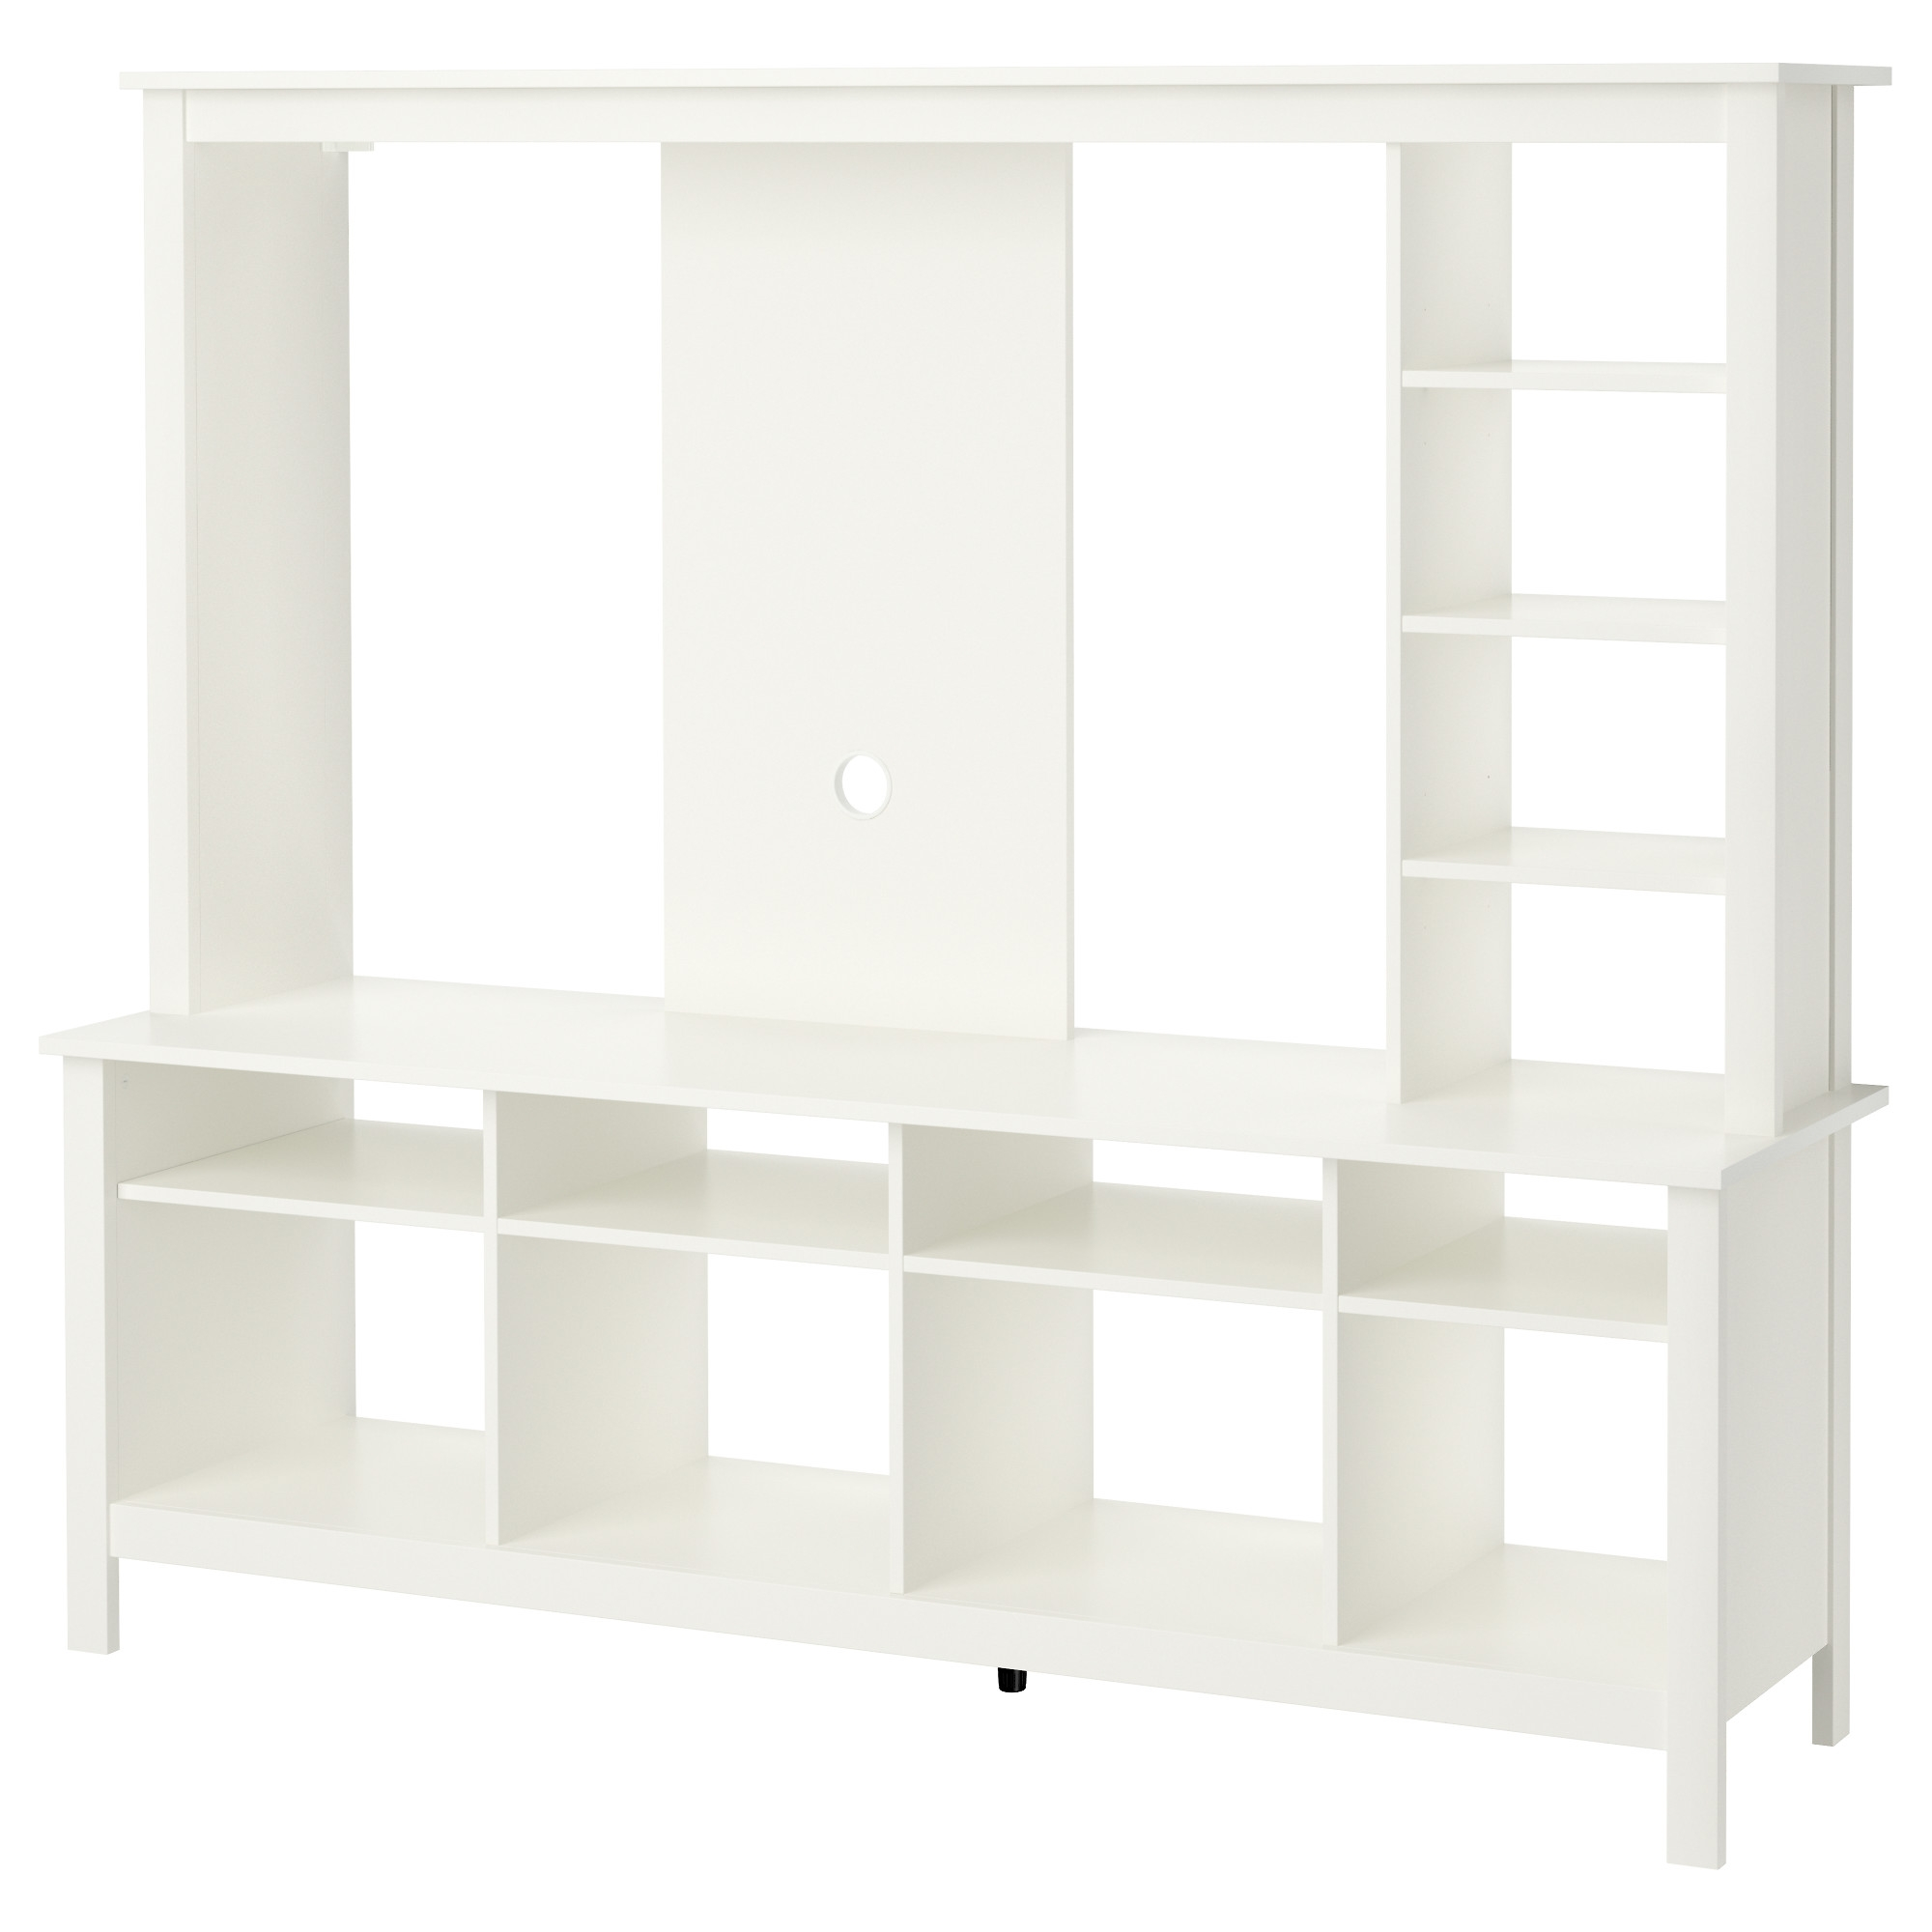 Tomns Tv Storage Unit White Ikea Regarding Tv Storage Unit (#4 of 14)